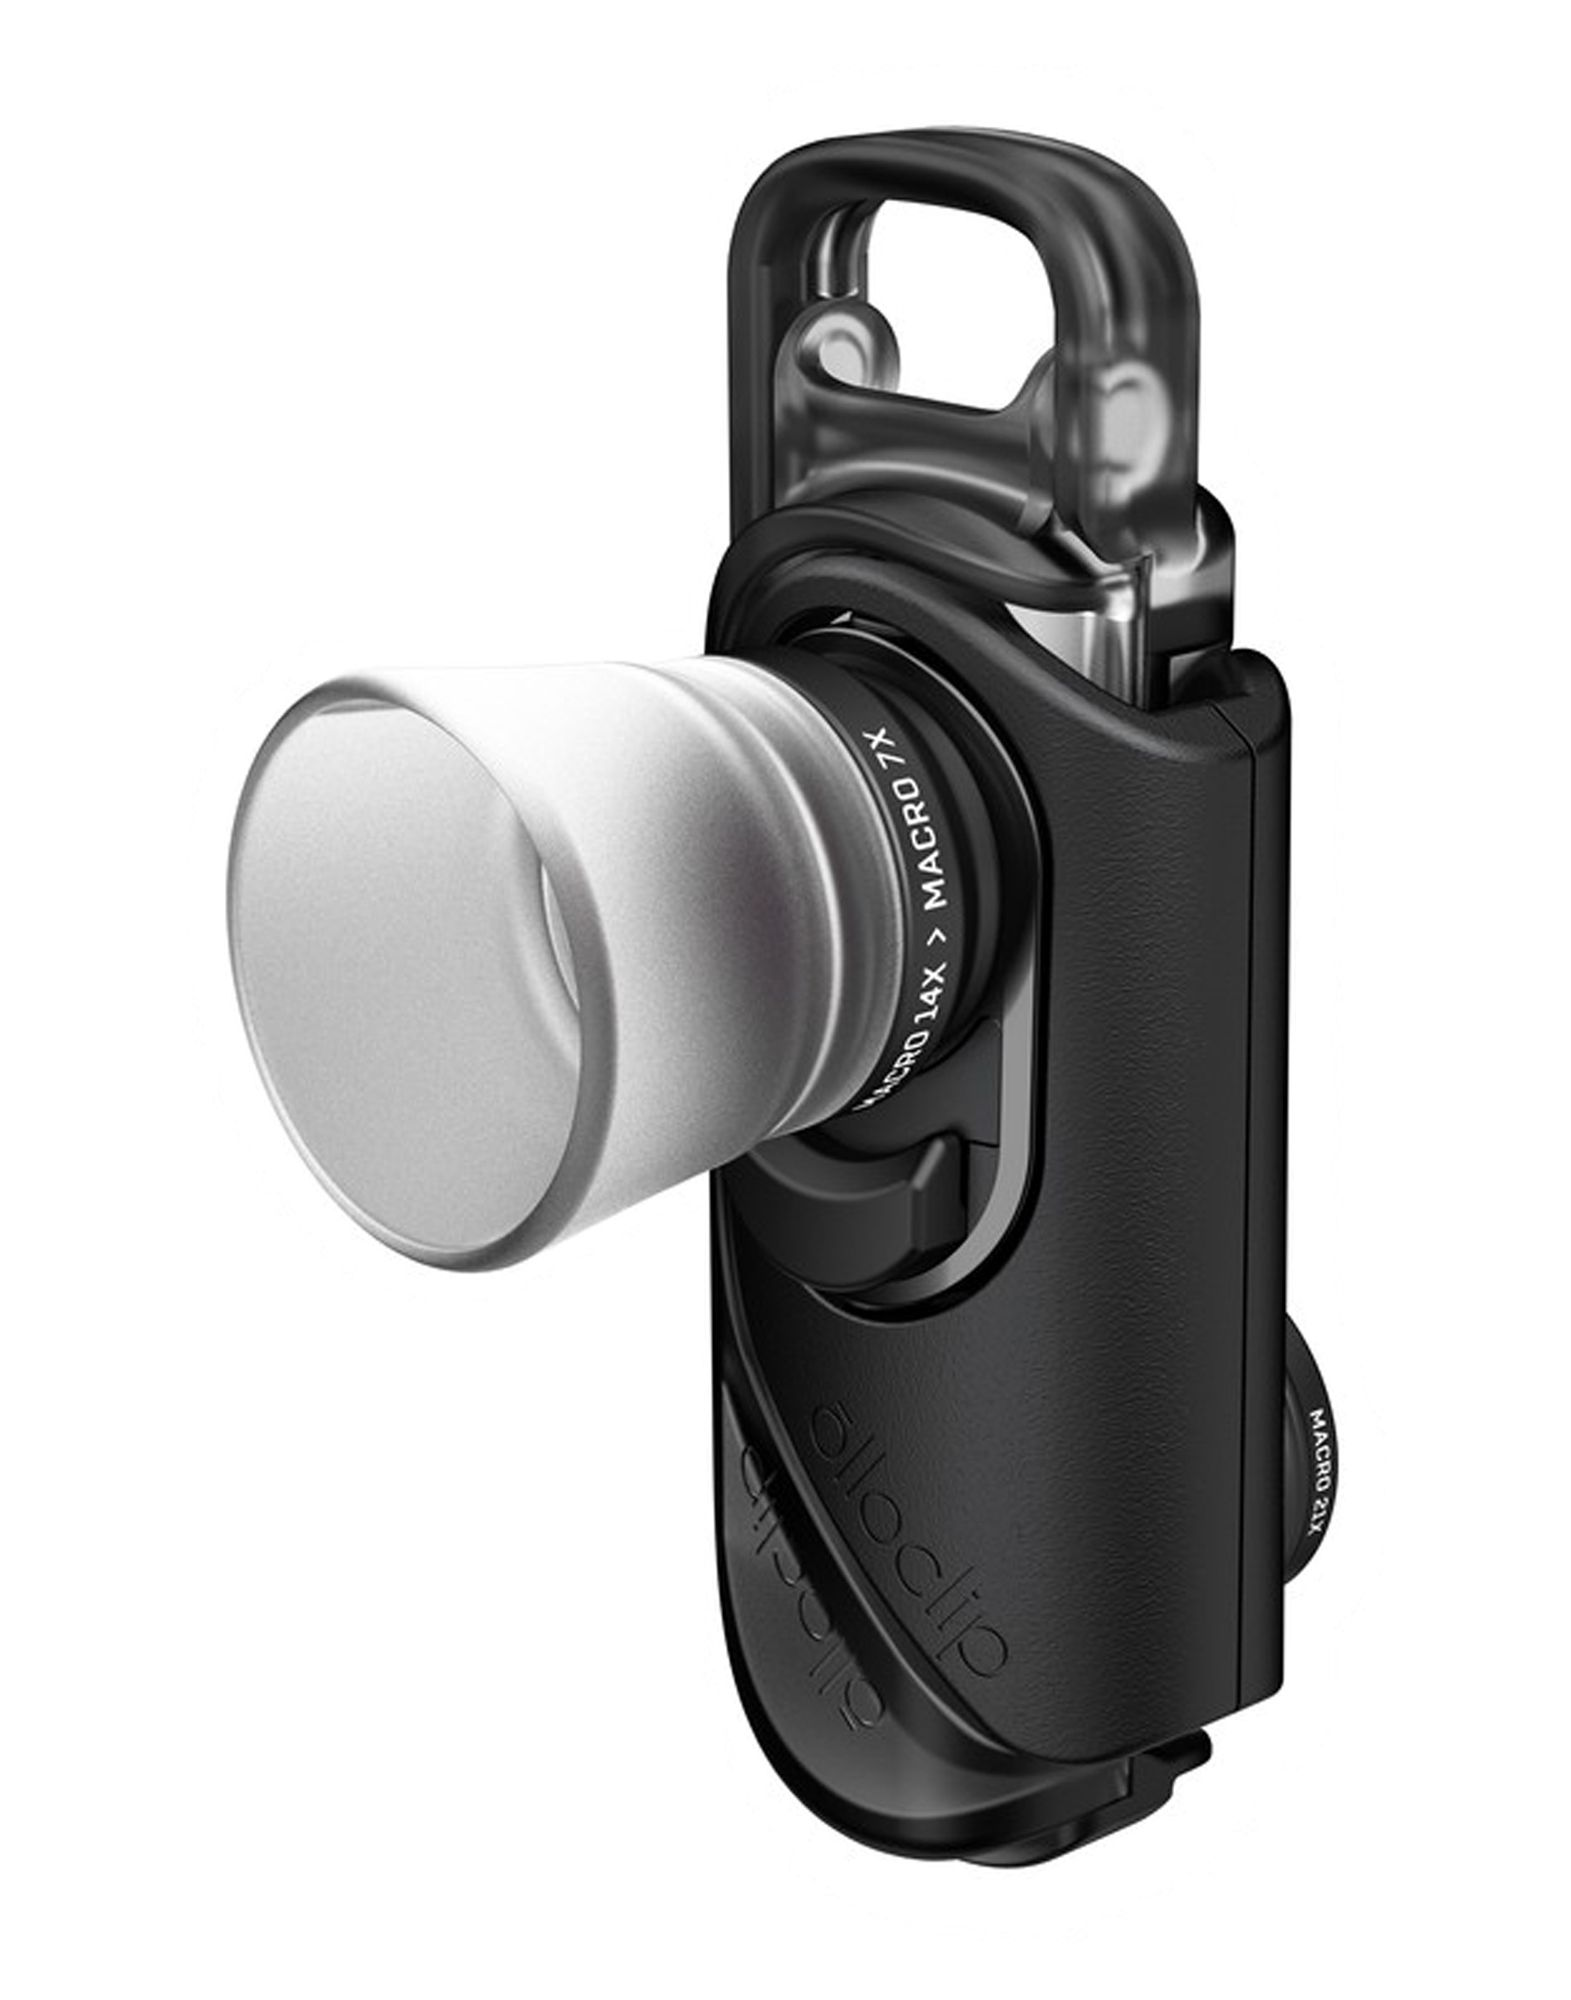 Accessorio Hi-Tech Olloclip Macro Pro Lens Set - Iphone 7/7+ - 7X, 14X Or 21X - Uomo - Acquista online su